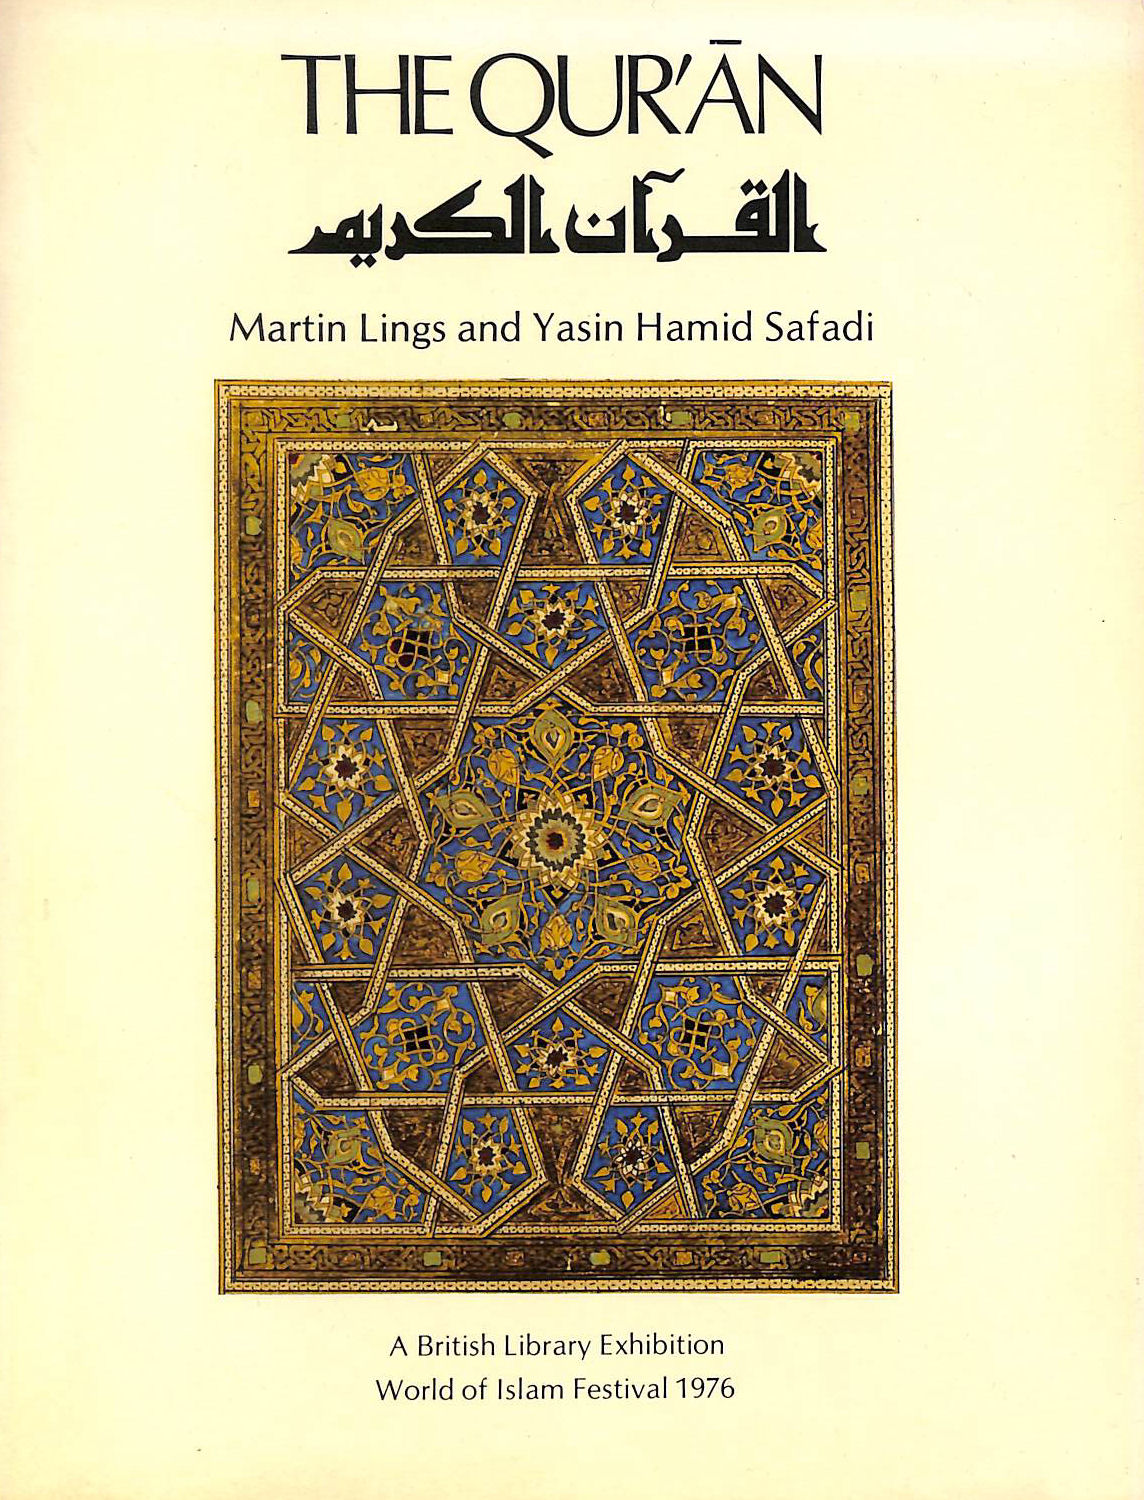 Image for The Qur'an: Catalogue of an Exhibition of Qur'an Manuscripts at the British Library, 3 April-15 August 1976 (World of Islam Festival 1976)